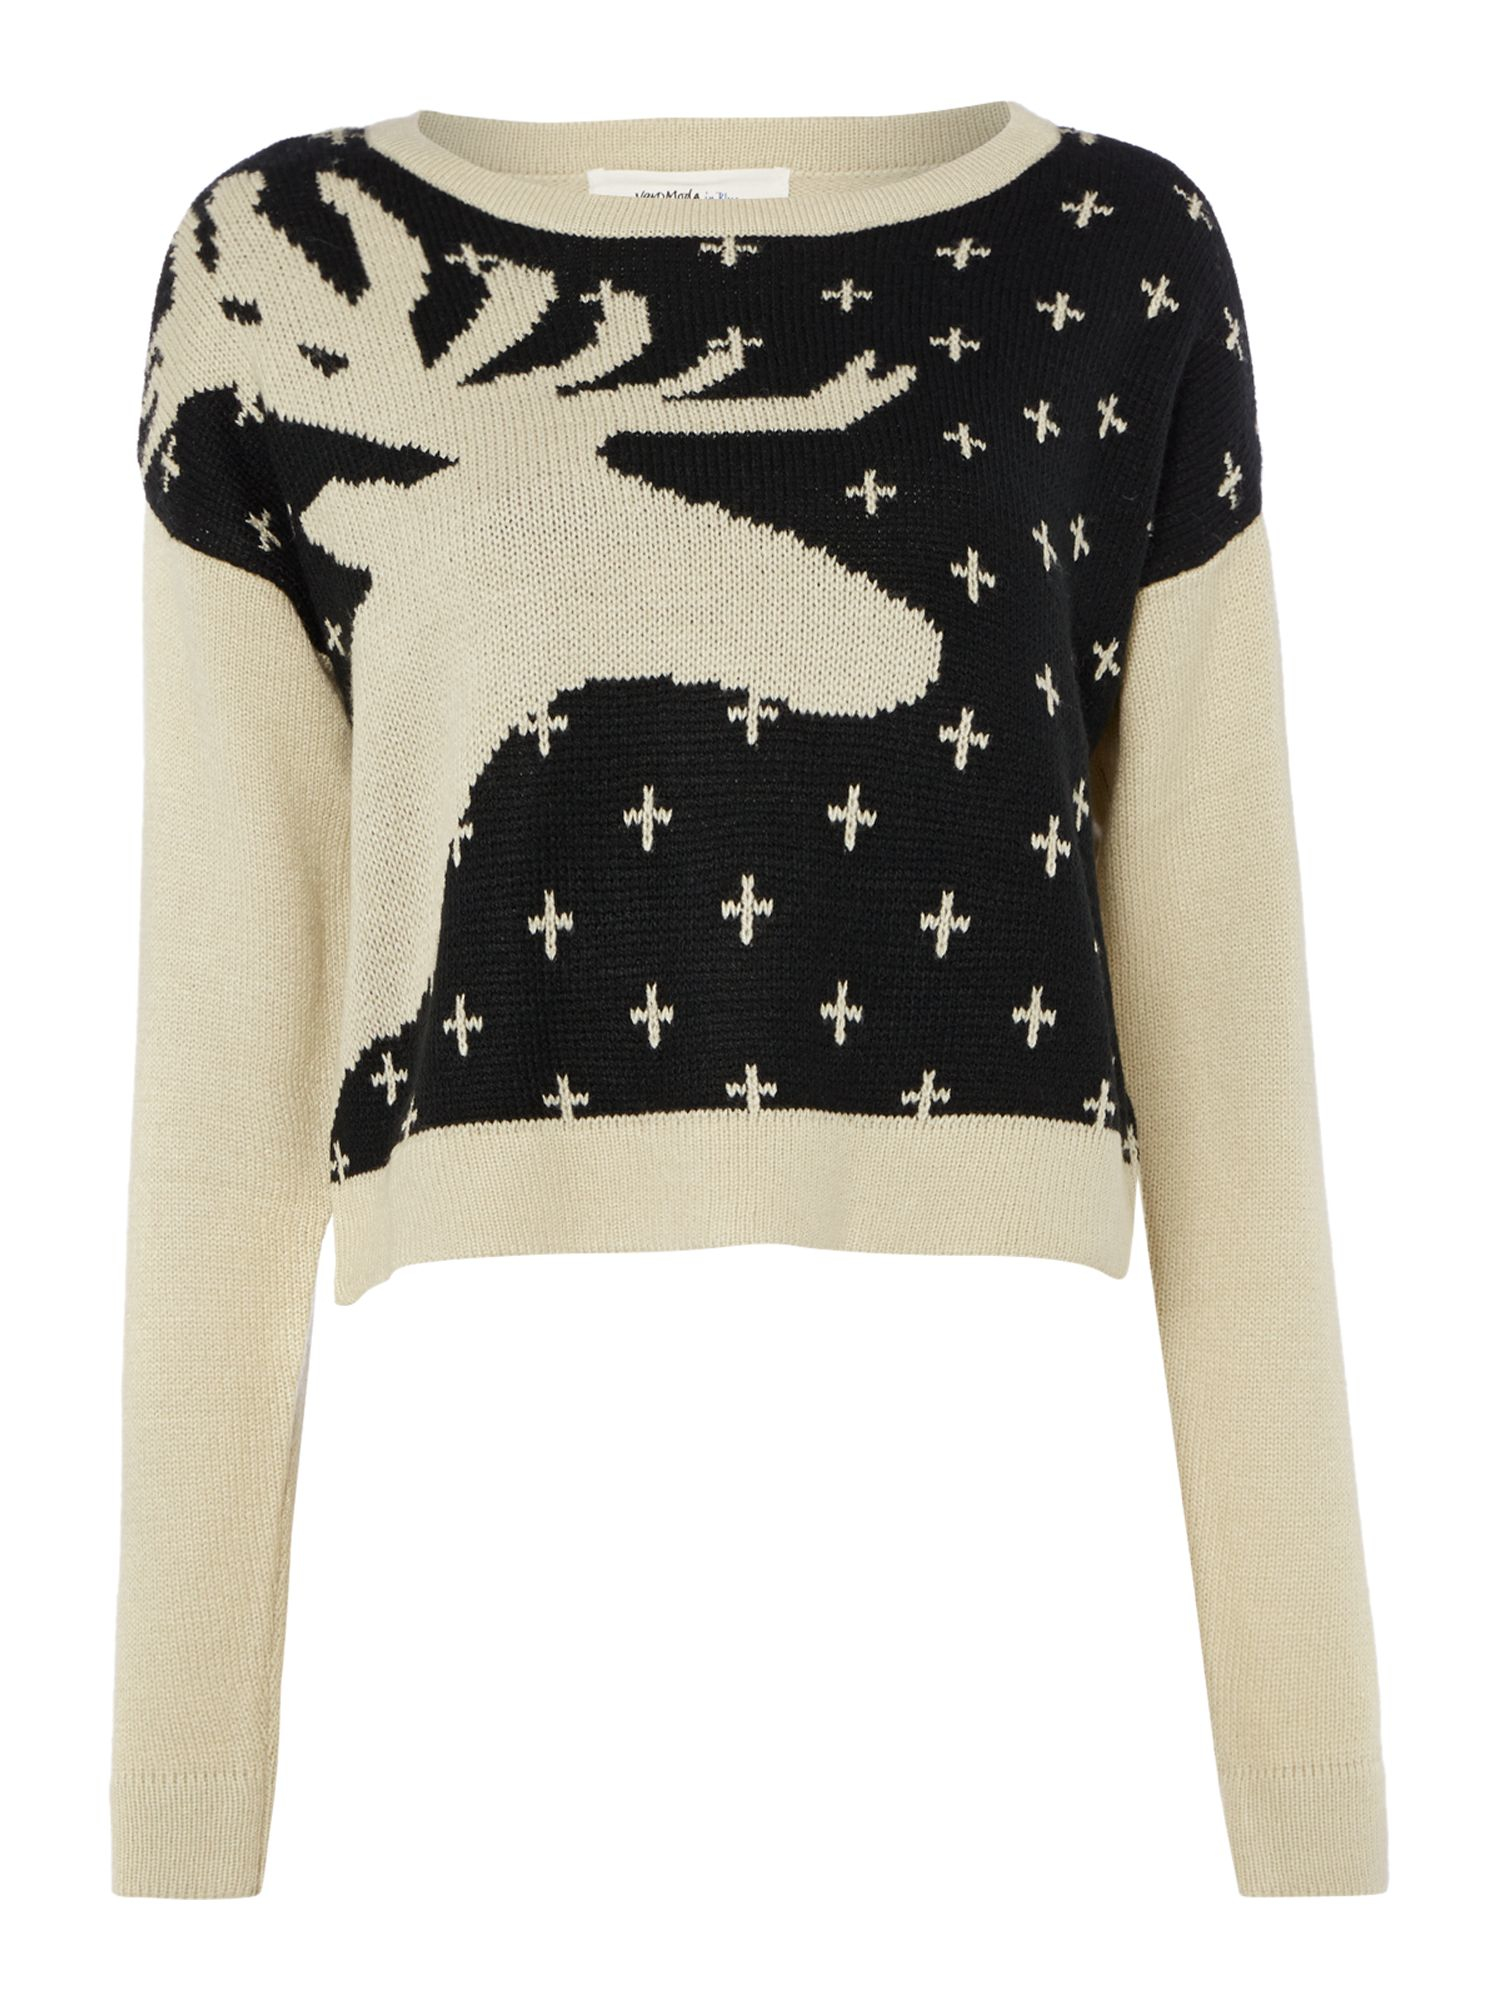 Vero Moda Knitting Yarns : Vero moda reindeer knit jumper in black lyst